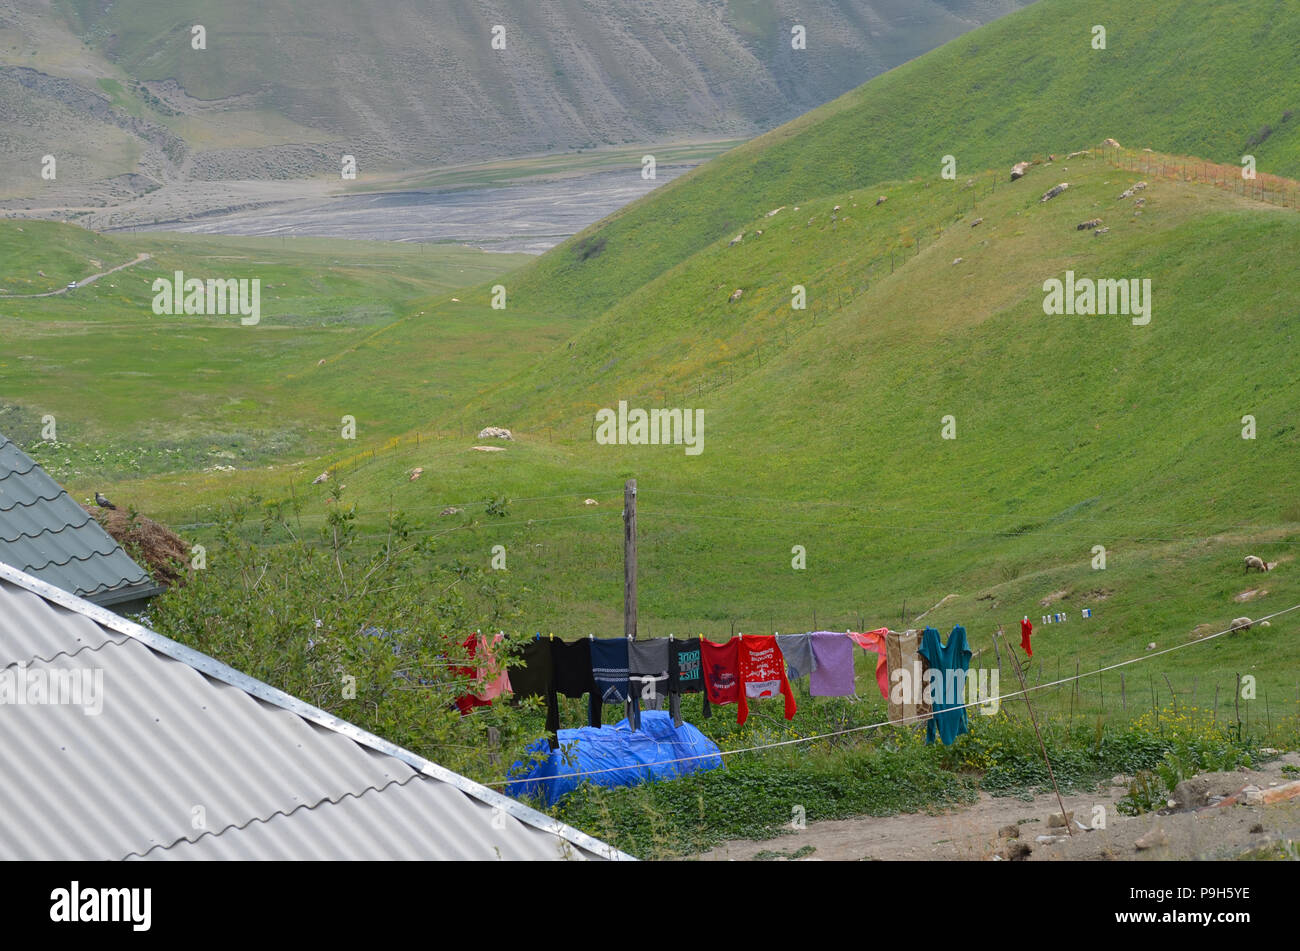 Qalayxudat , Azerbaijan, a remote mountain village in the Greater Caucasus range - Stock Image